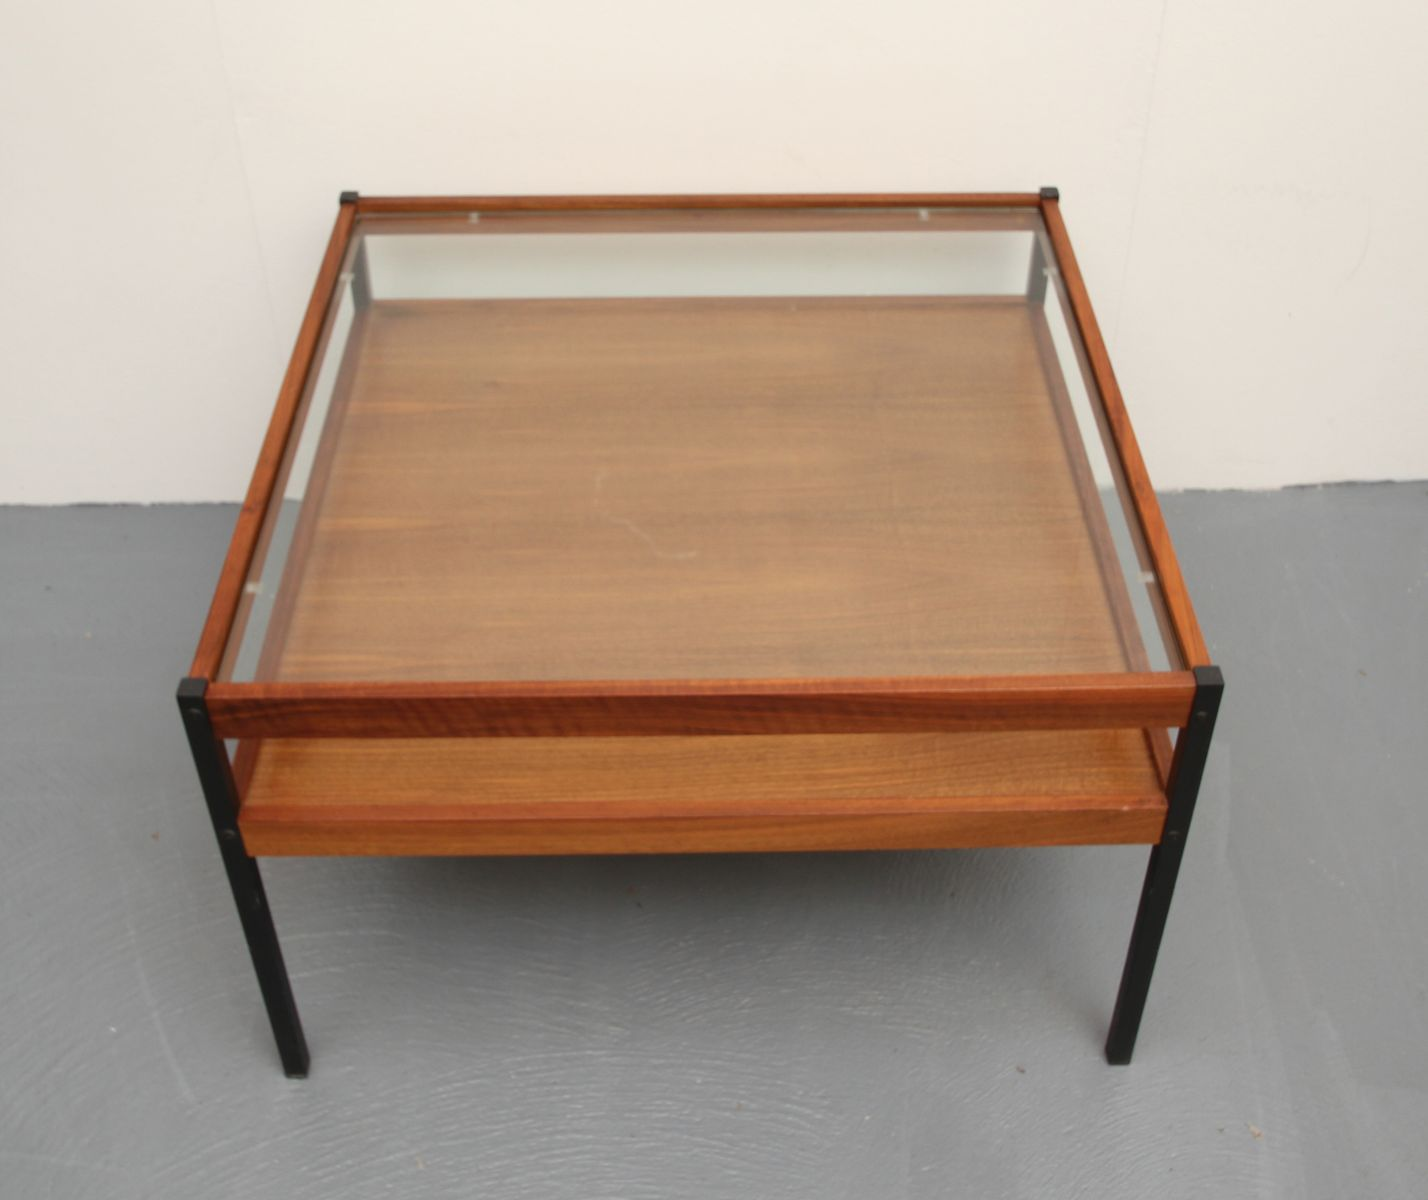 Walnut Veneer Glass Coffee Table 1960s For Sale At Pamono